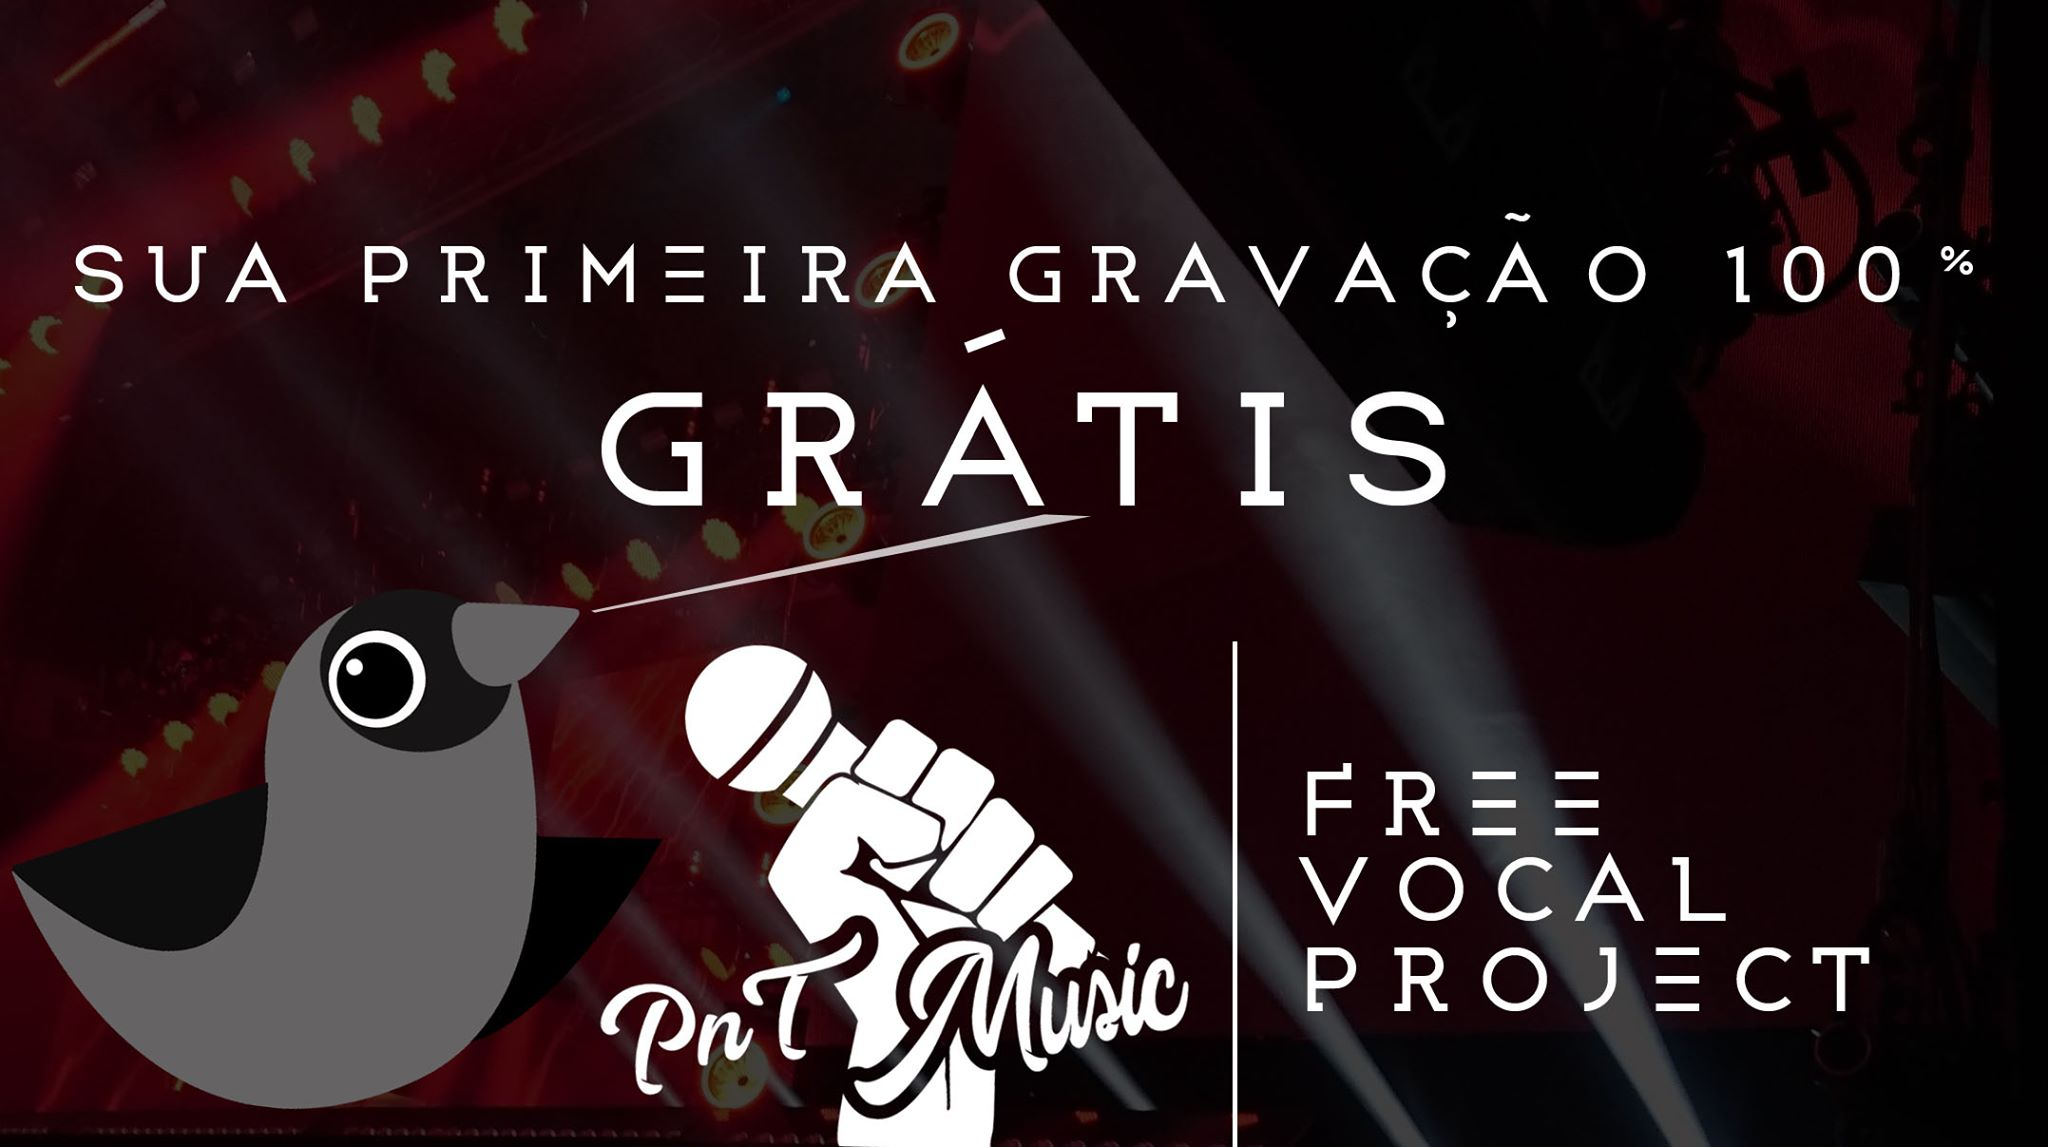 Free Vocal Project